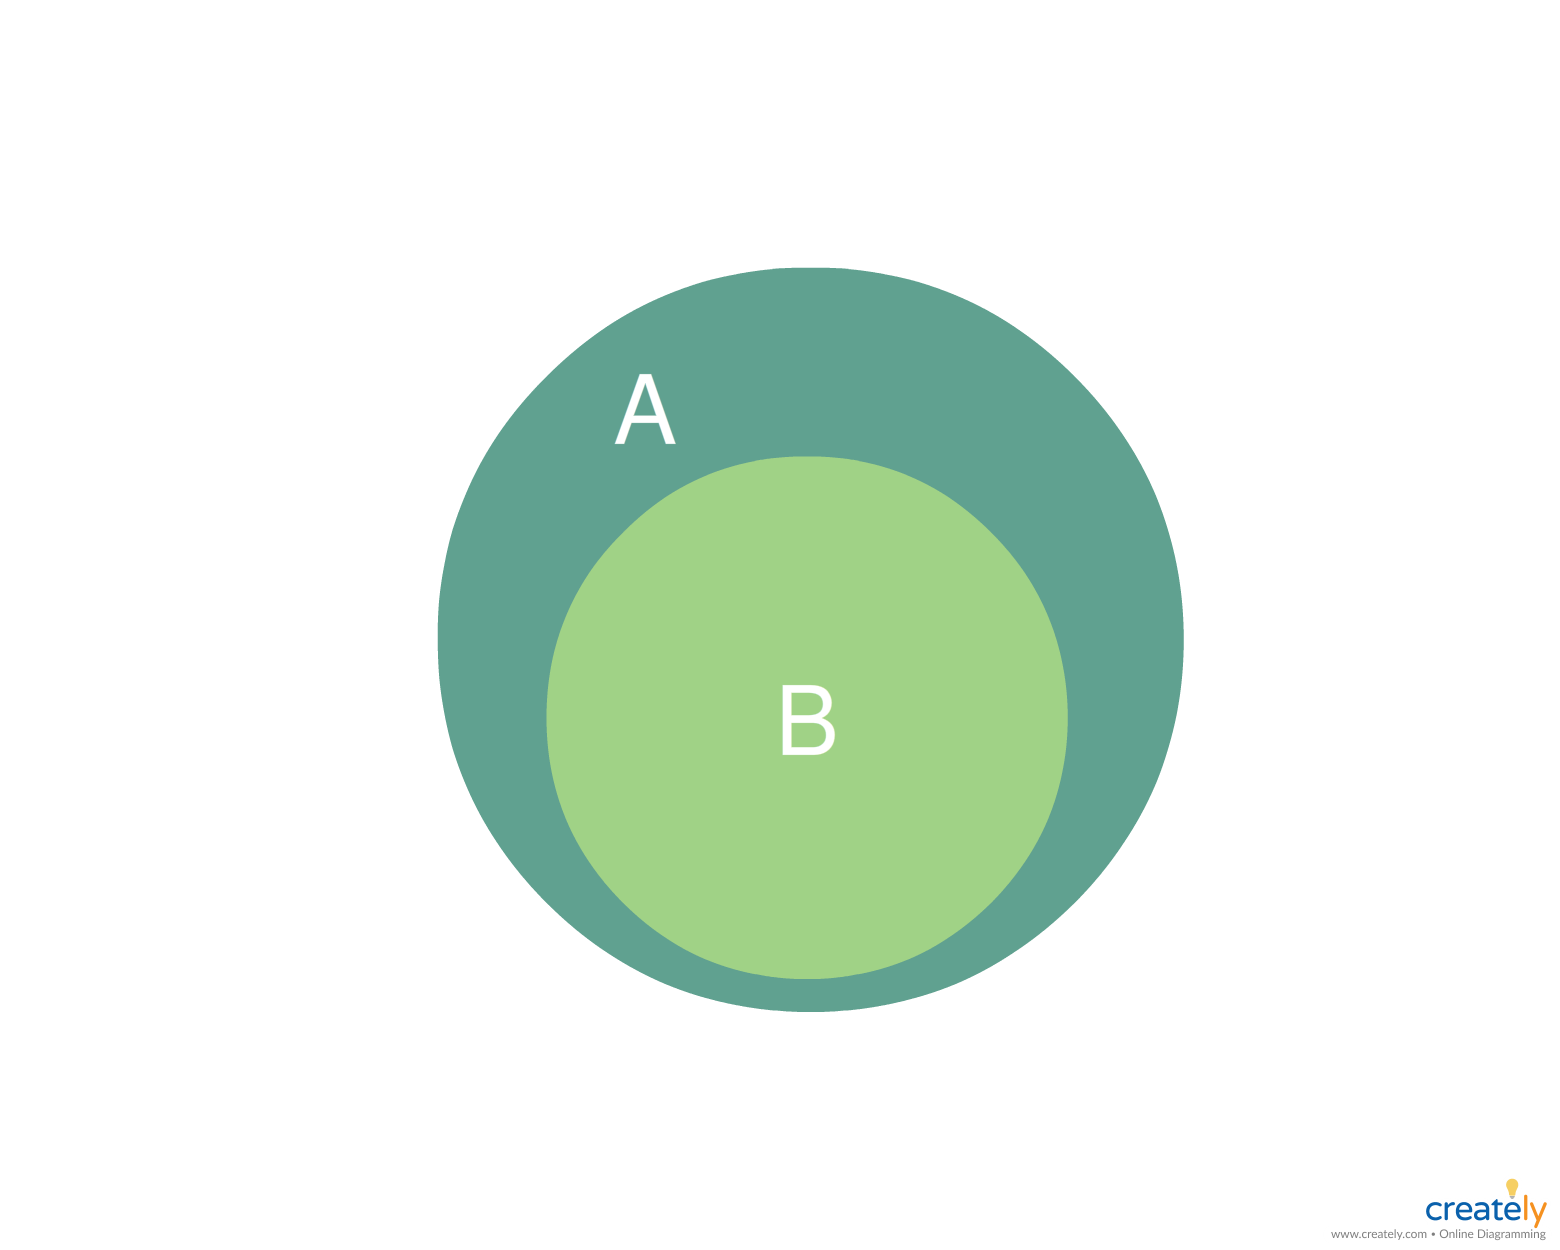 Venn Diagram Example Showing A Is A Proper Subset Of B And Conversely B Is A Proper Super Set Of A You Can Venn Diagram Template Venn Diagram Examples Diagram